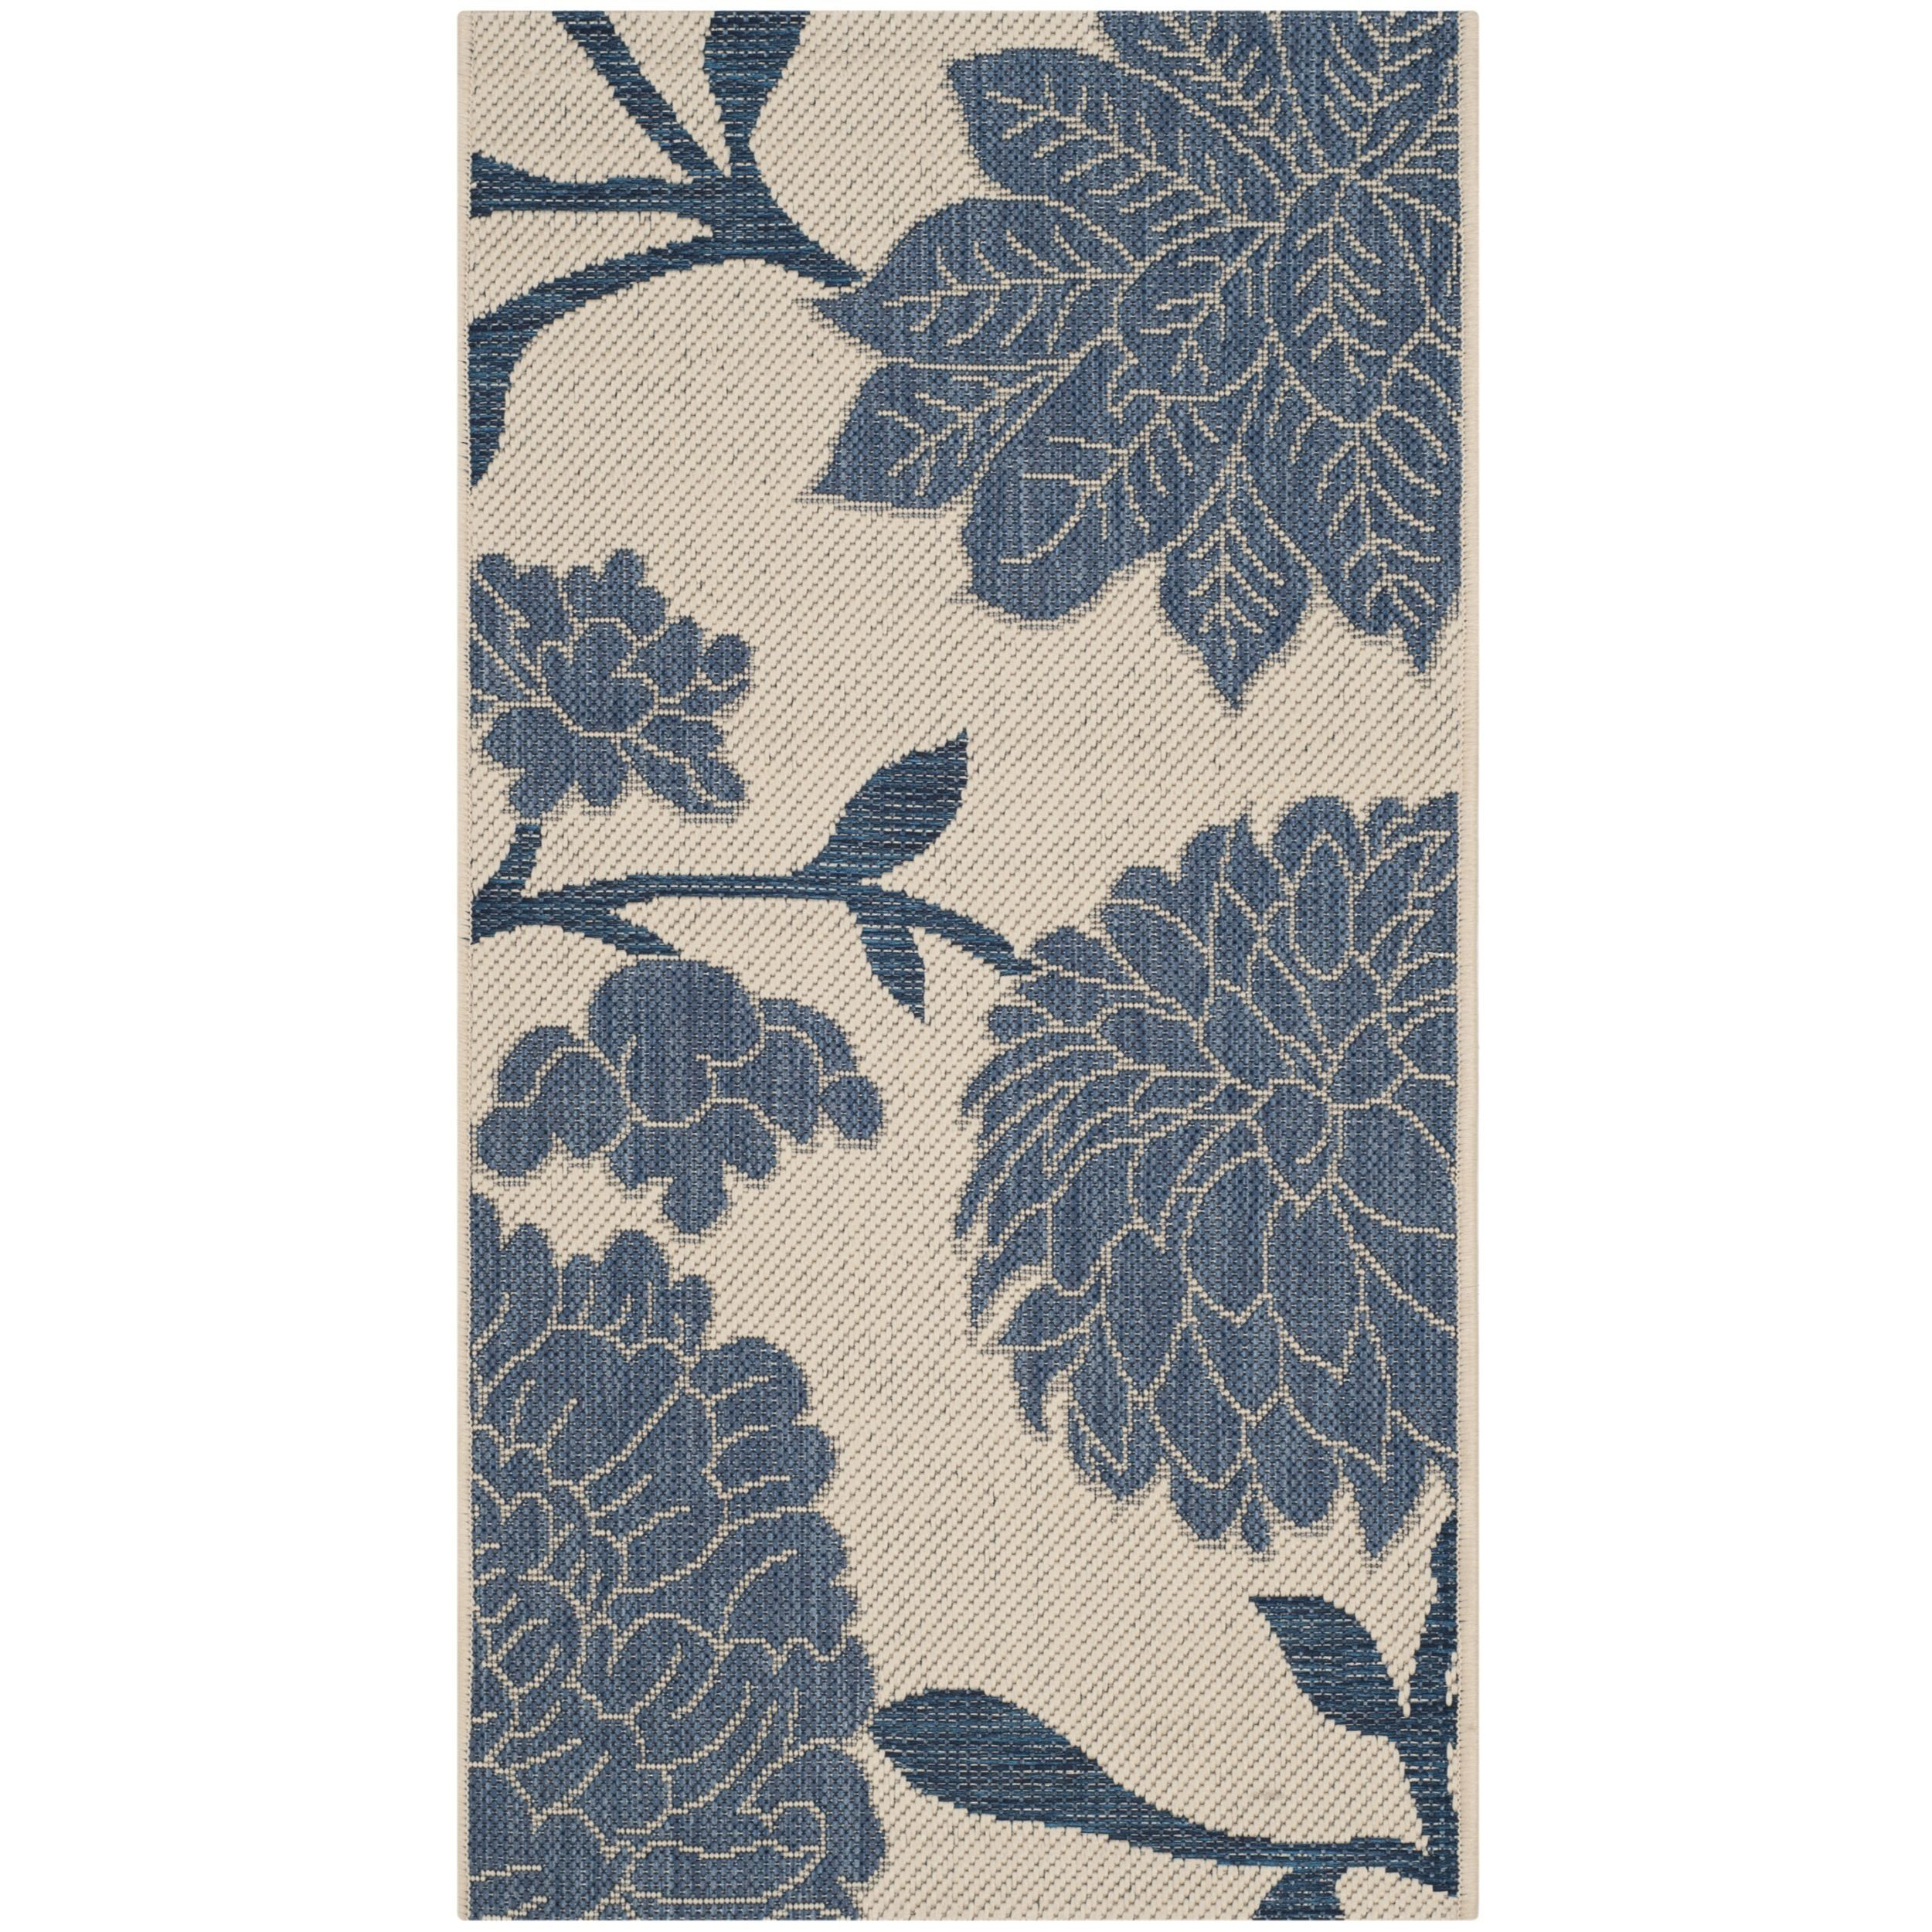 Safavieh Indoor/ Outdoor Courtyard Beige/ Blue Rug (2' x 3'7) (CY7321-233A25-2) (Polypropylene, Floral)